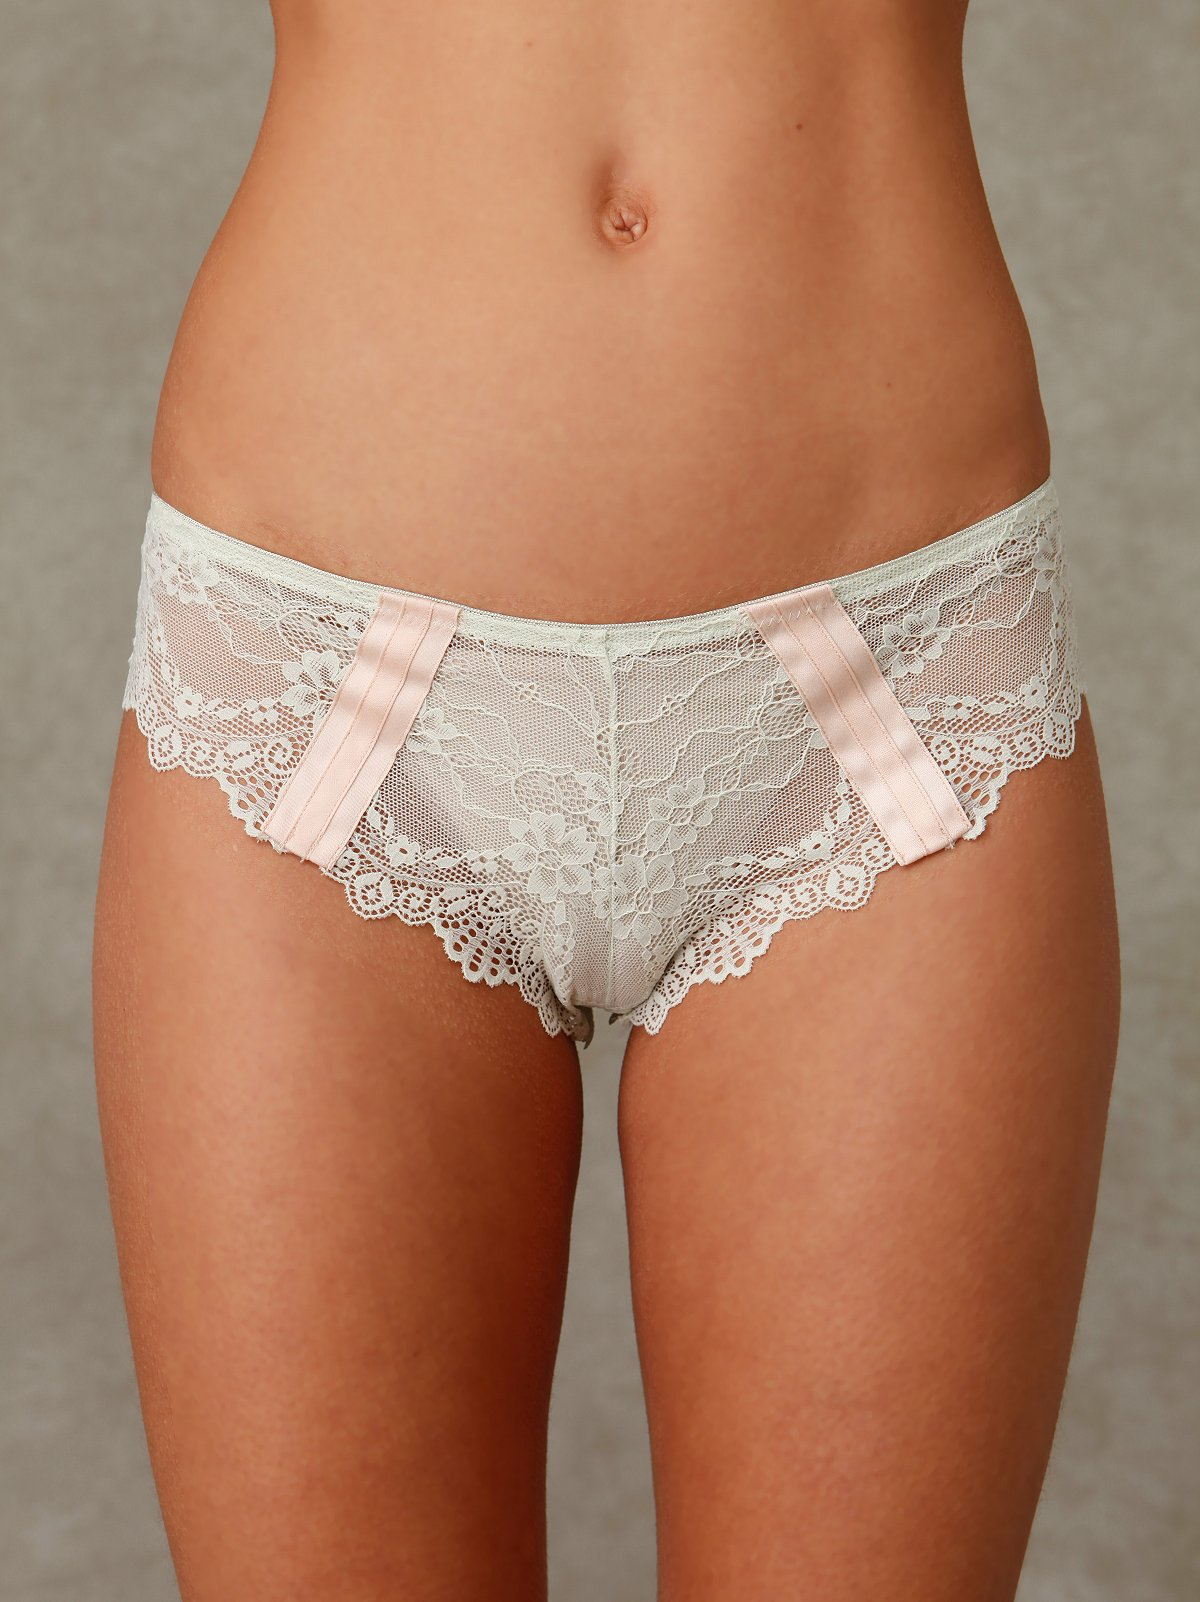 Scalloped Lace Pantie with Stripes